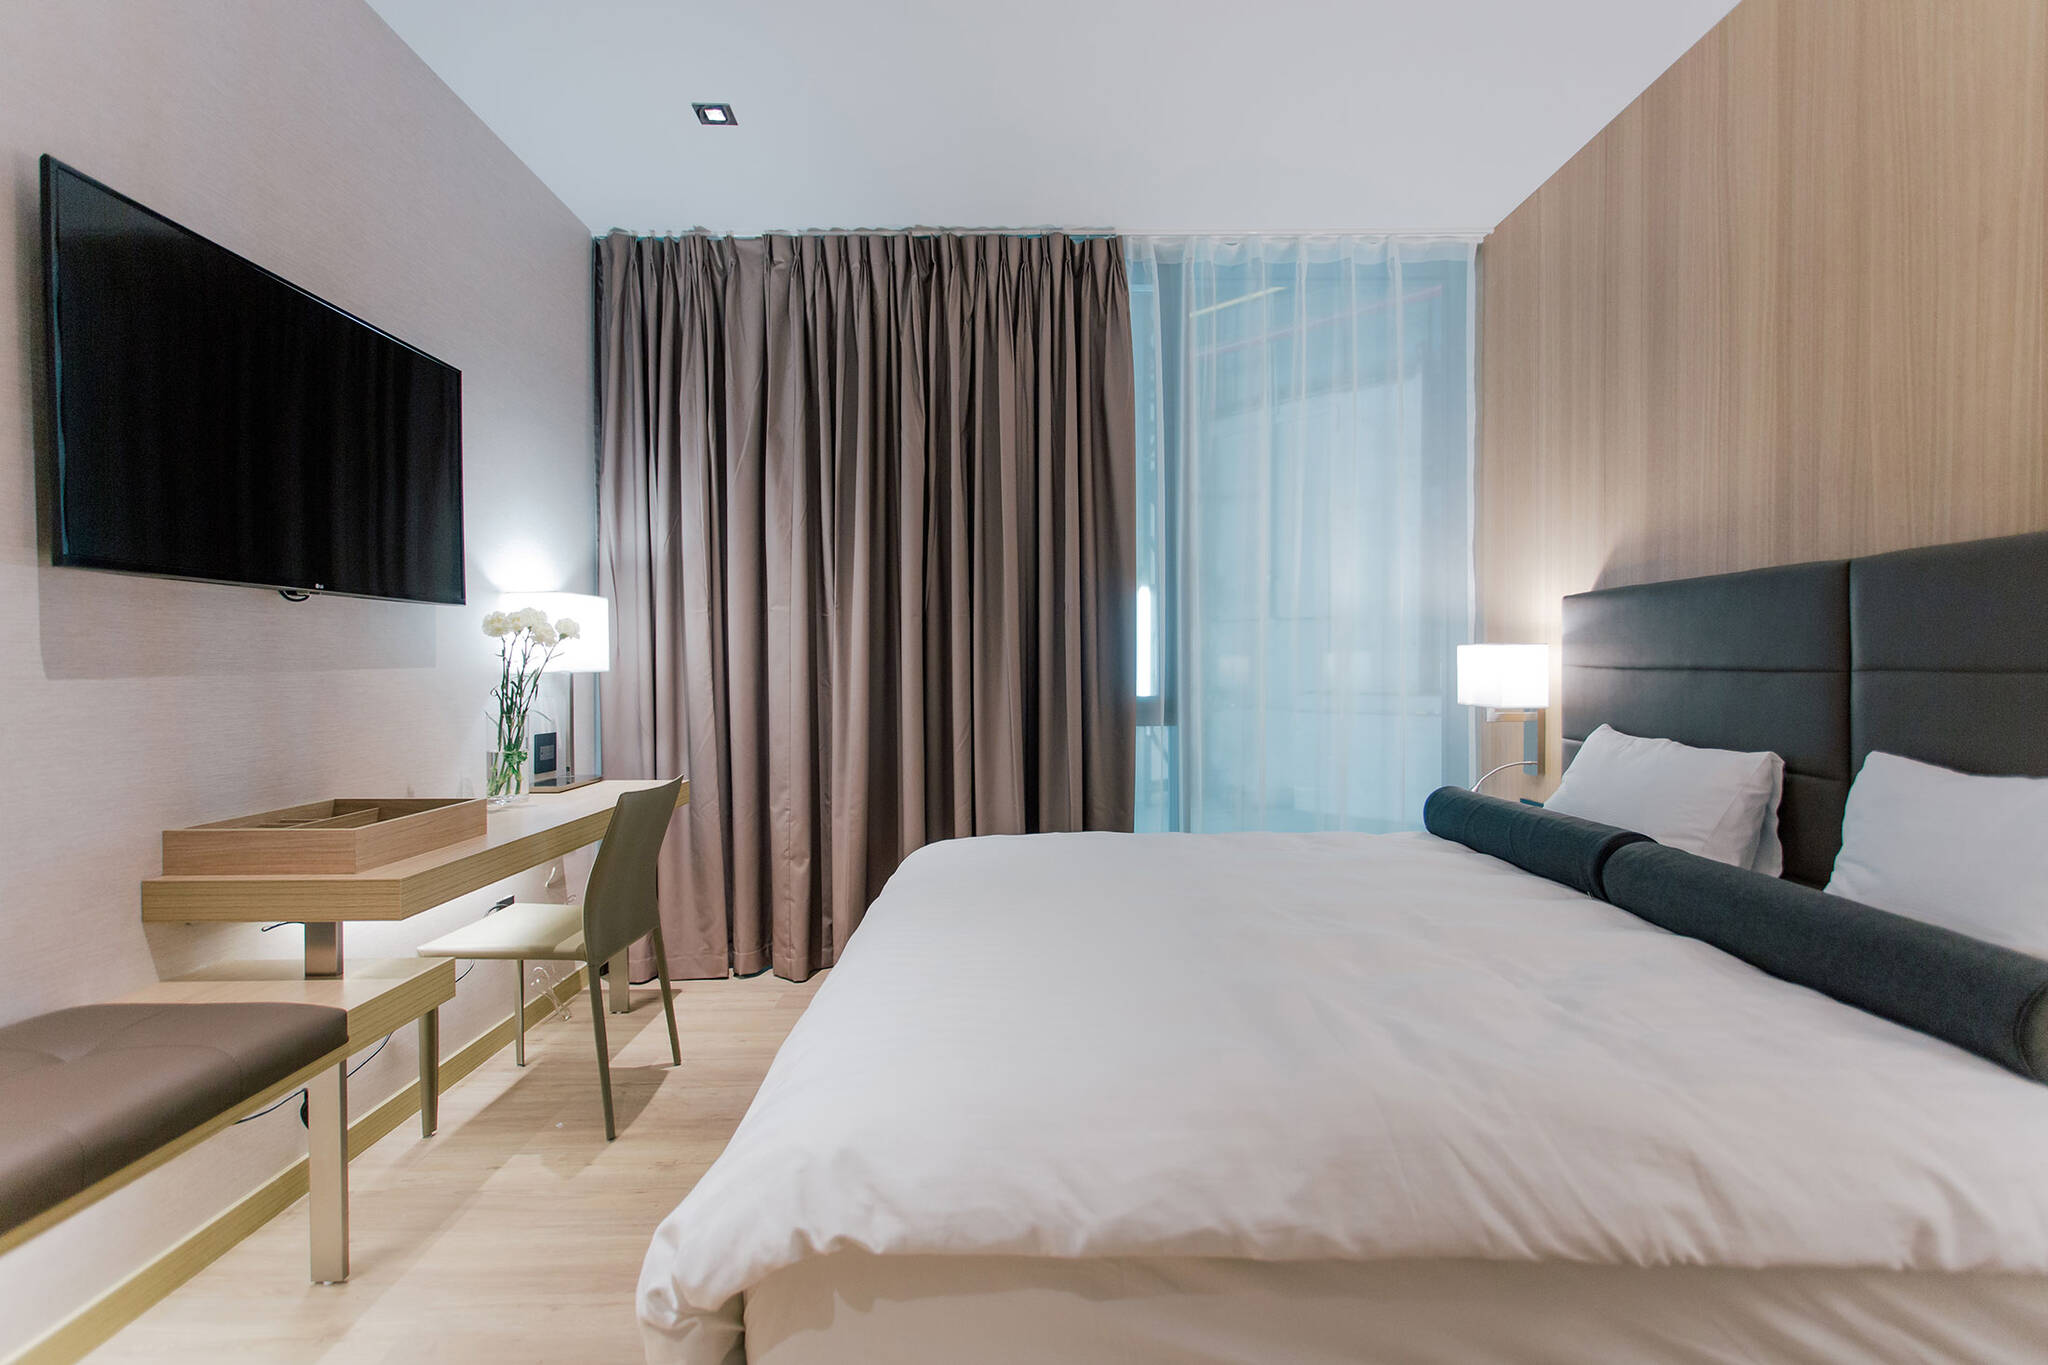 Interior of a guestroom module of the Modular AC Hotel project located at 842 Sixth Avenue in NoMad, New York City designed by the architecture studio Danny Forster & Architecture